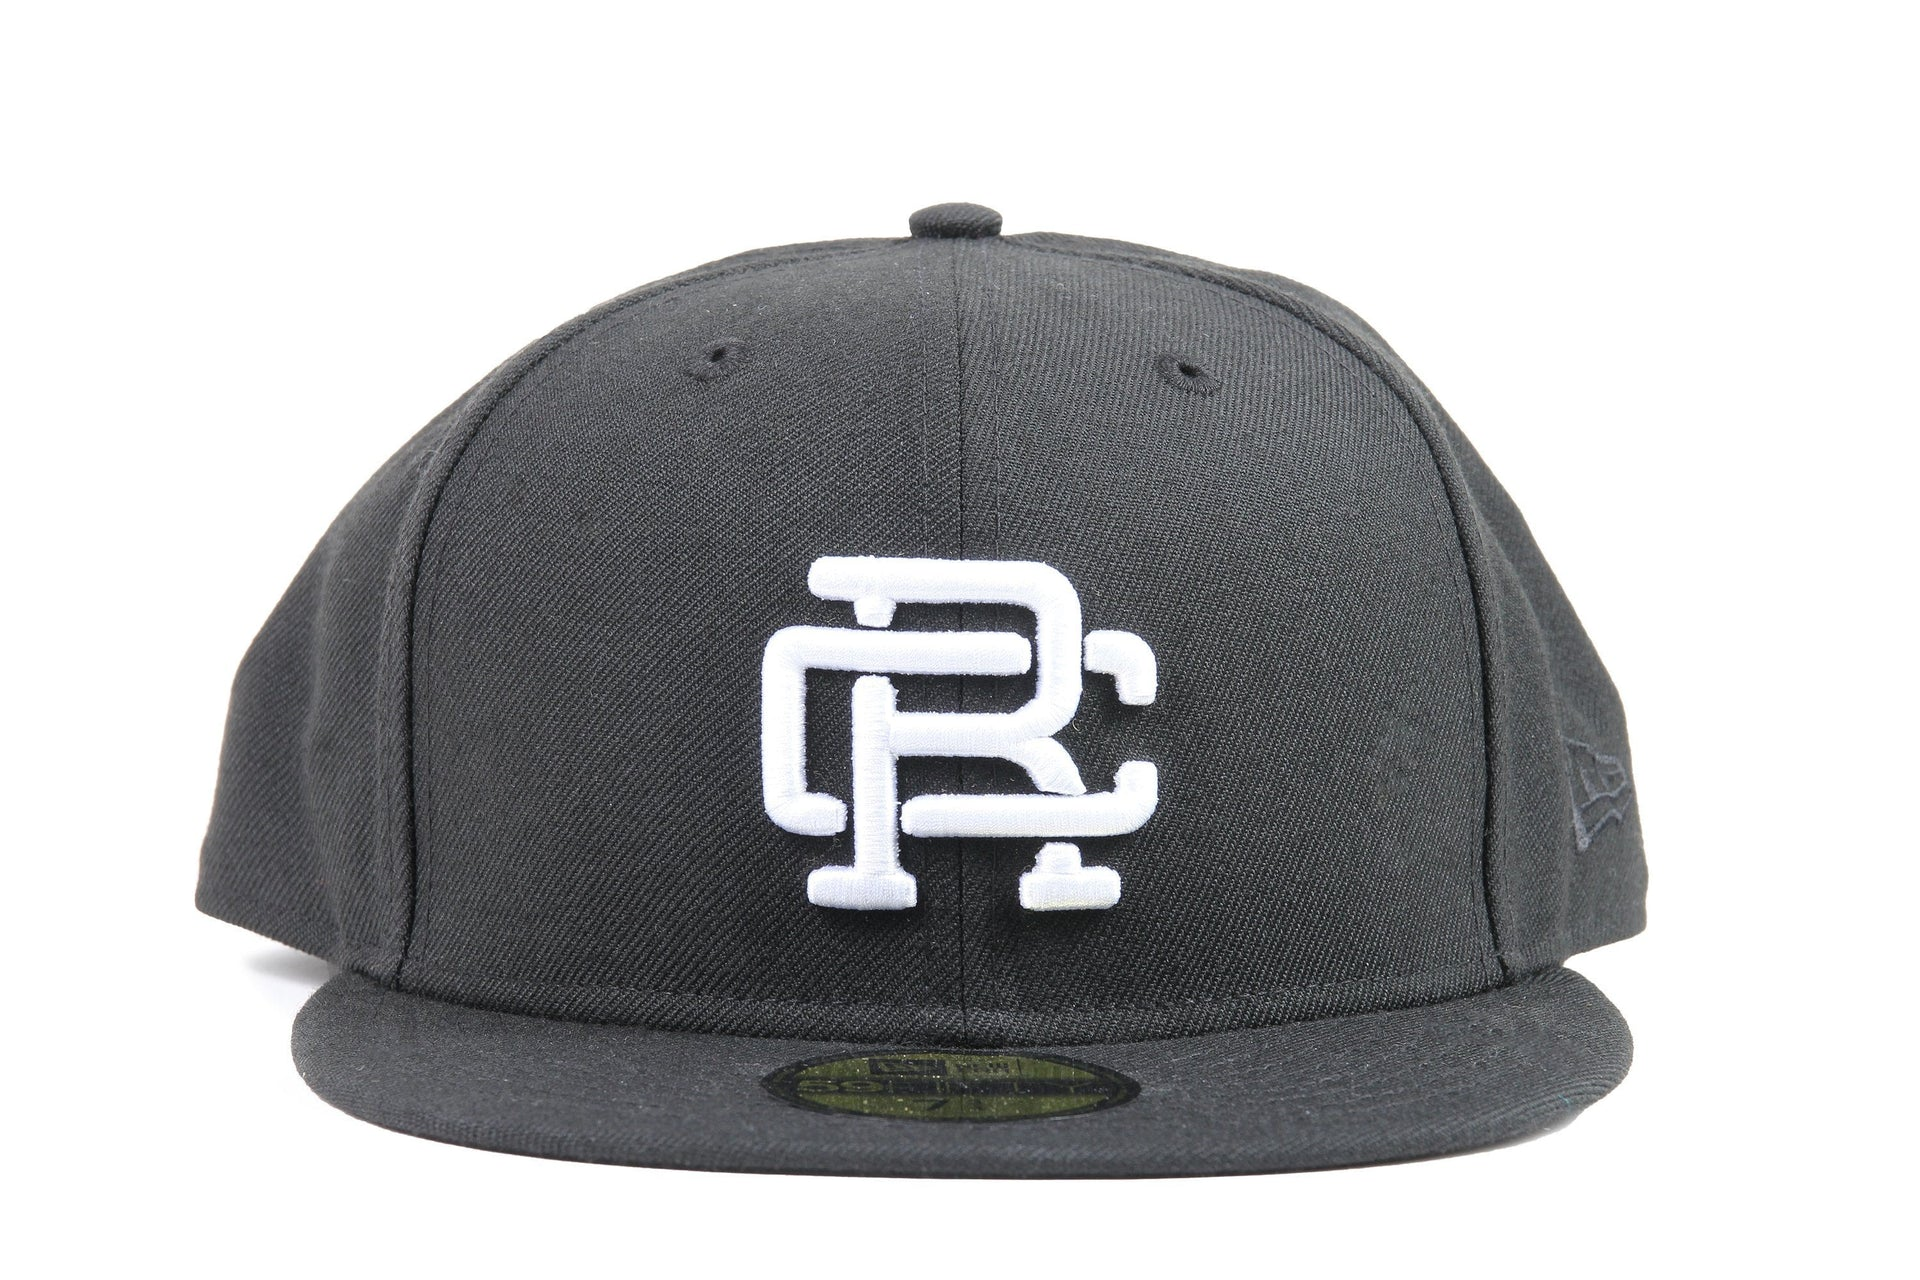 BLACK WOVEN NEW ERA RC EMBROIDERED HAT RC-7052 HATS REIGNING CHAMP BLACK 7 3/4